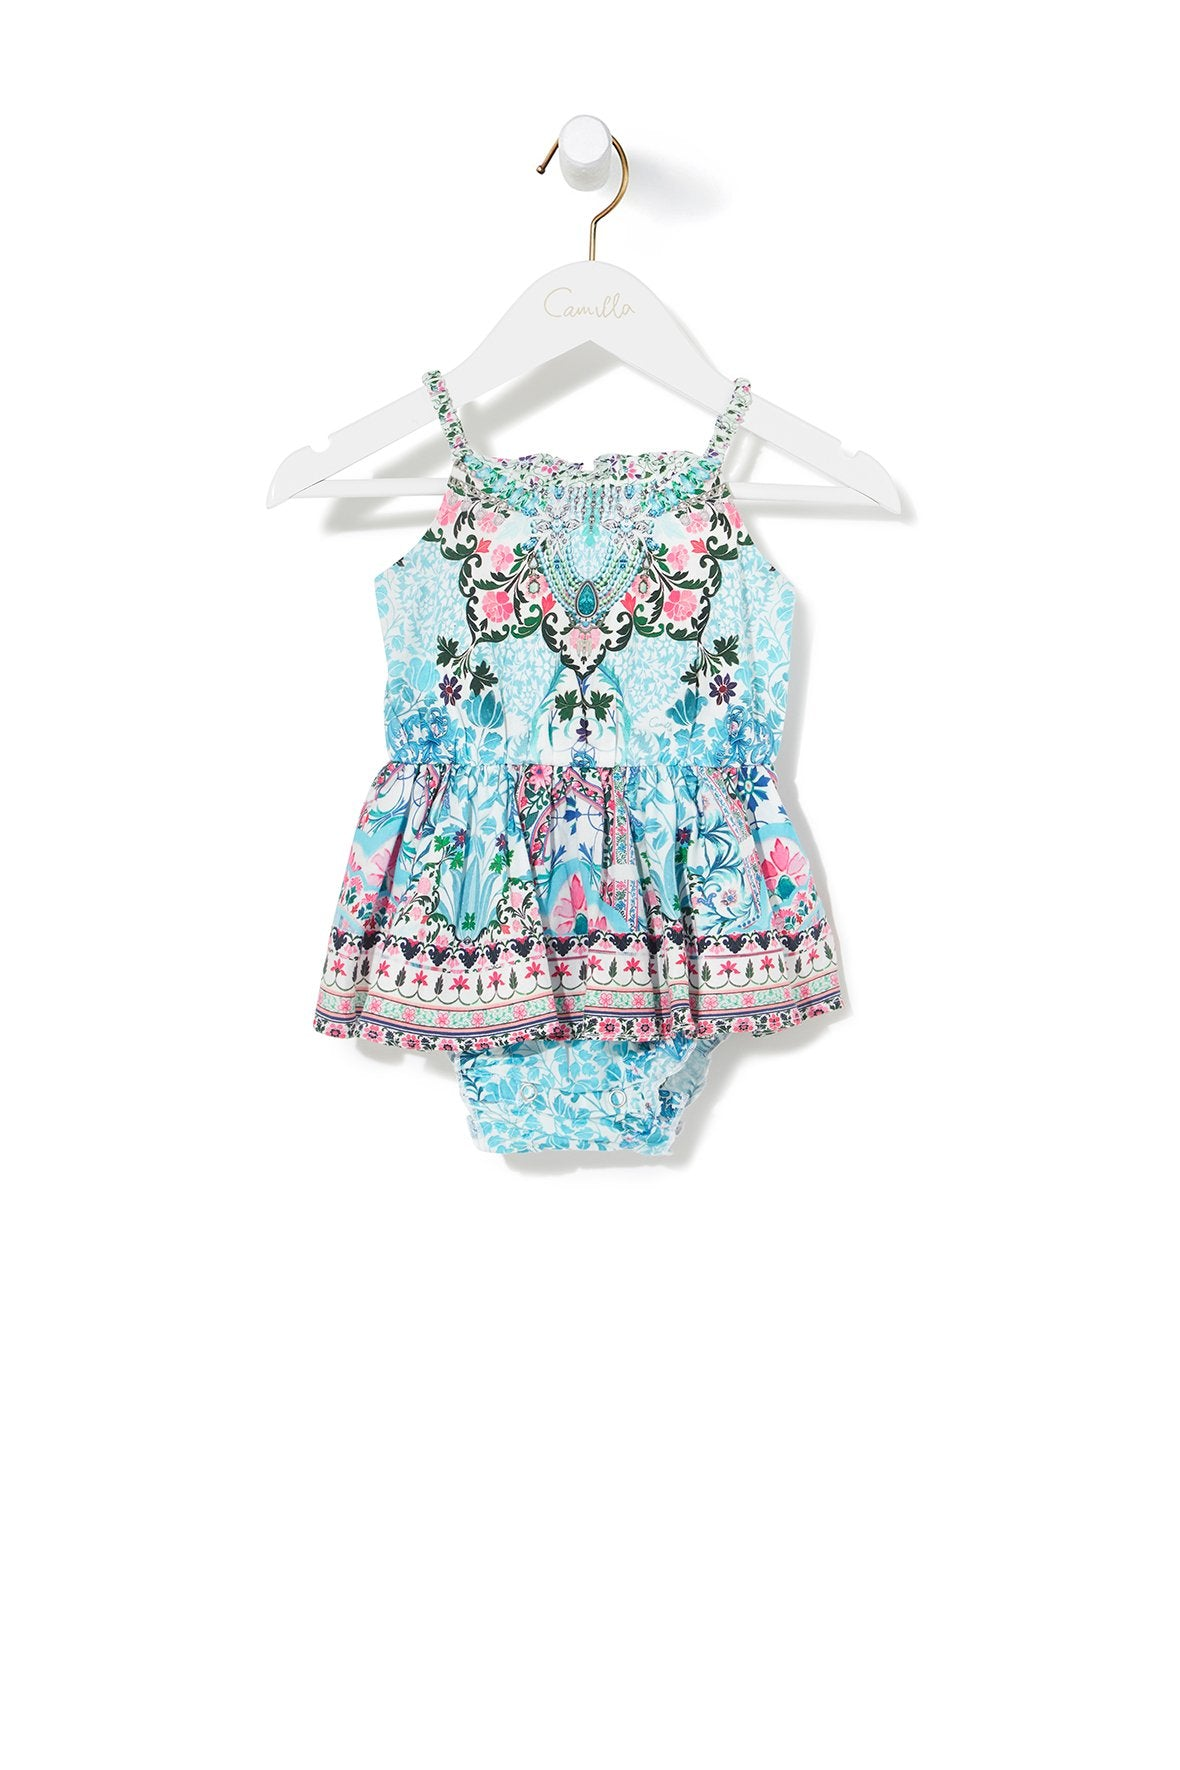 LOVERS RETREAT TODDLERS JUMP DRESS